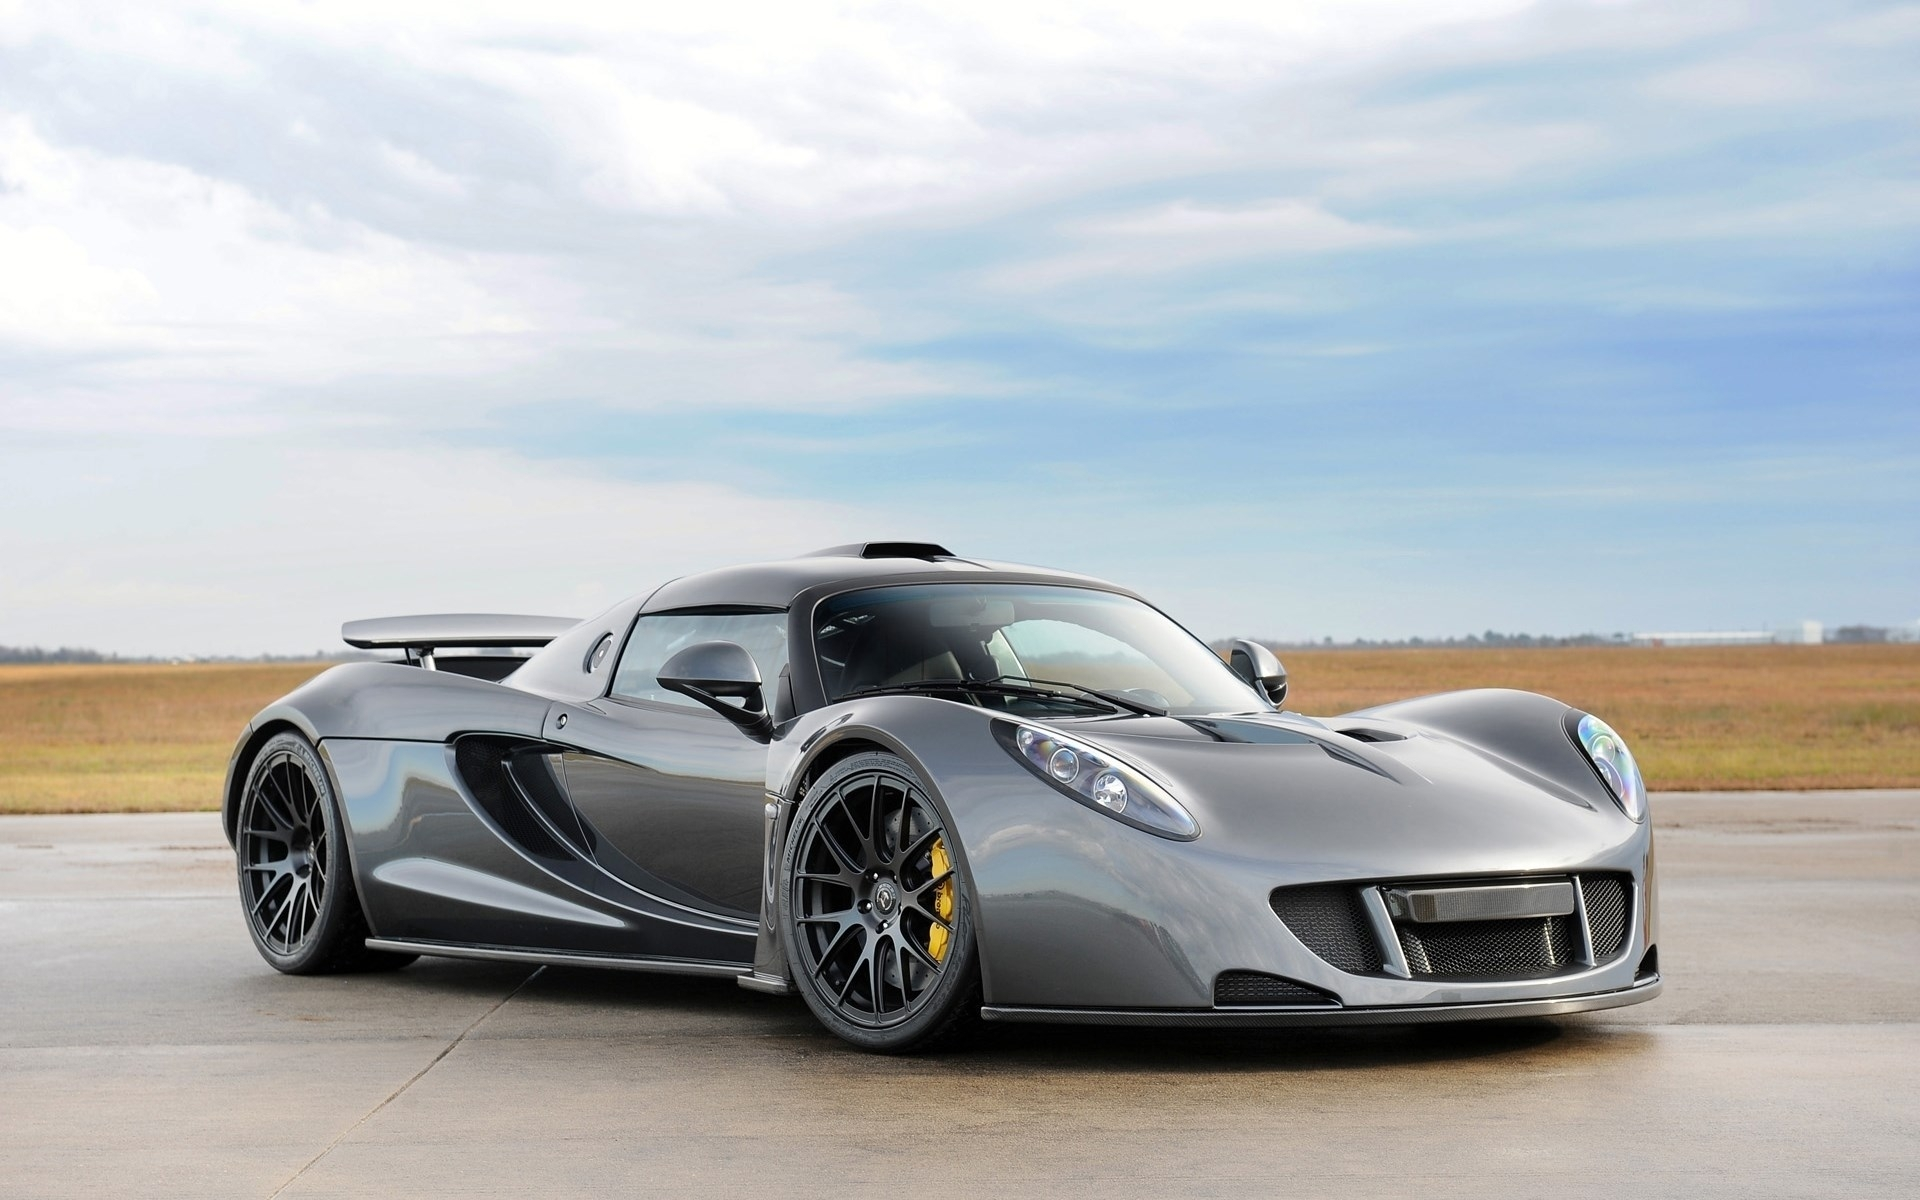 1920x1200 px hennessey venom gt wallpaper: high definition